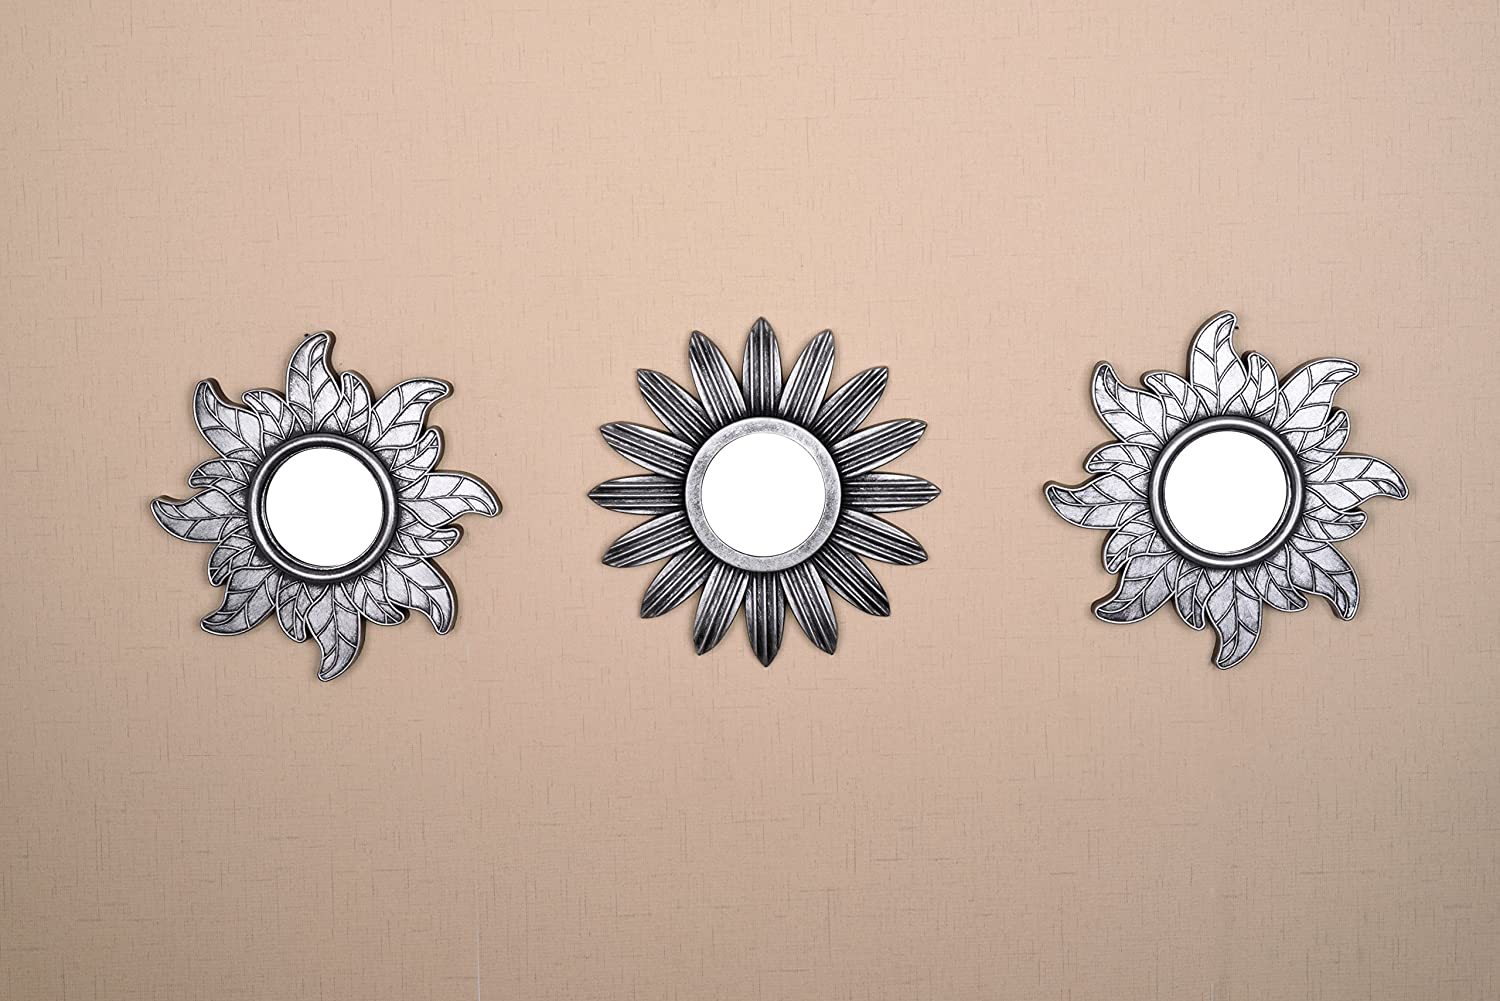 All American Collection New Seperated 3 Piece Decorative Mirror Set, Wall Accent Display (Silver Flower and Sun)